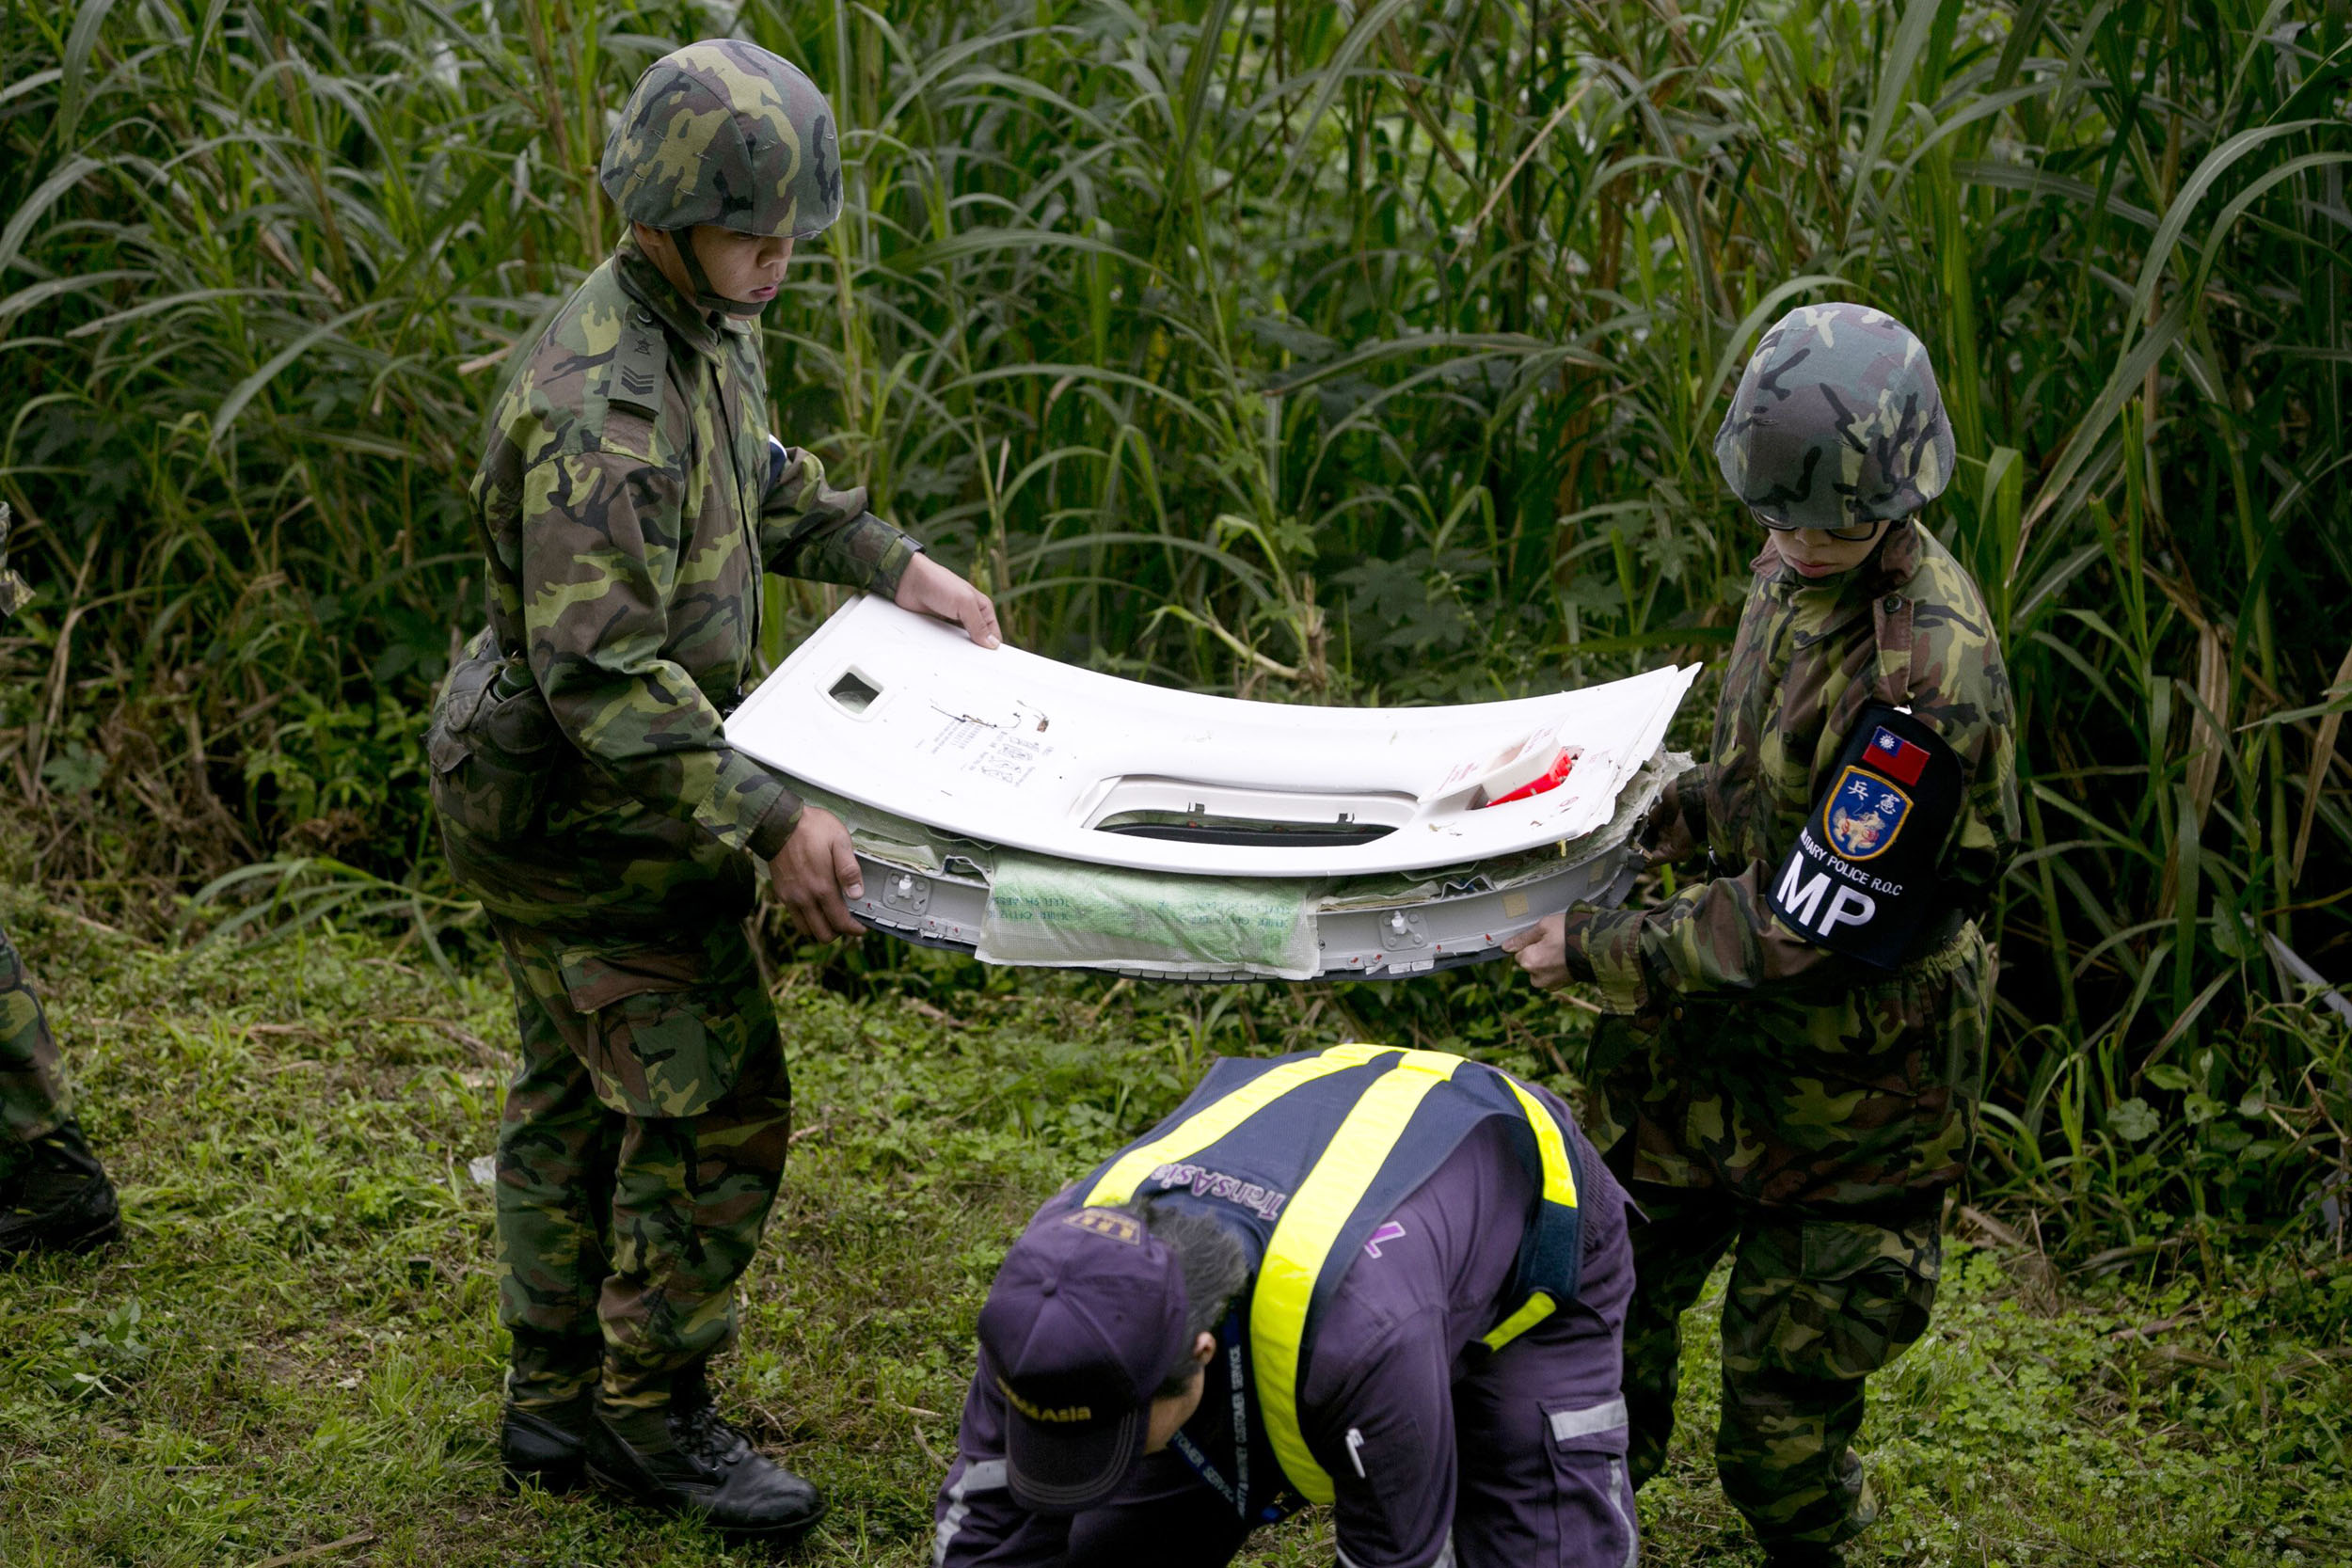 Rescue teams carrry a window from a TransAsia Airways ATR 72-600 turboprop airplane that crashed into the Keelung River shortly after takeoff from Taipei Songshan airport in Taipei, Taiwan on Feb. 4, 2015.